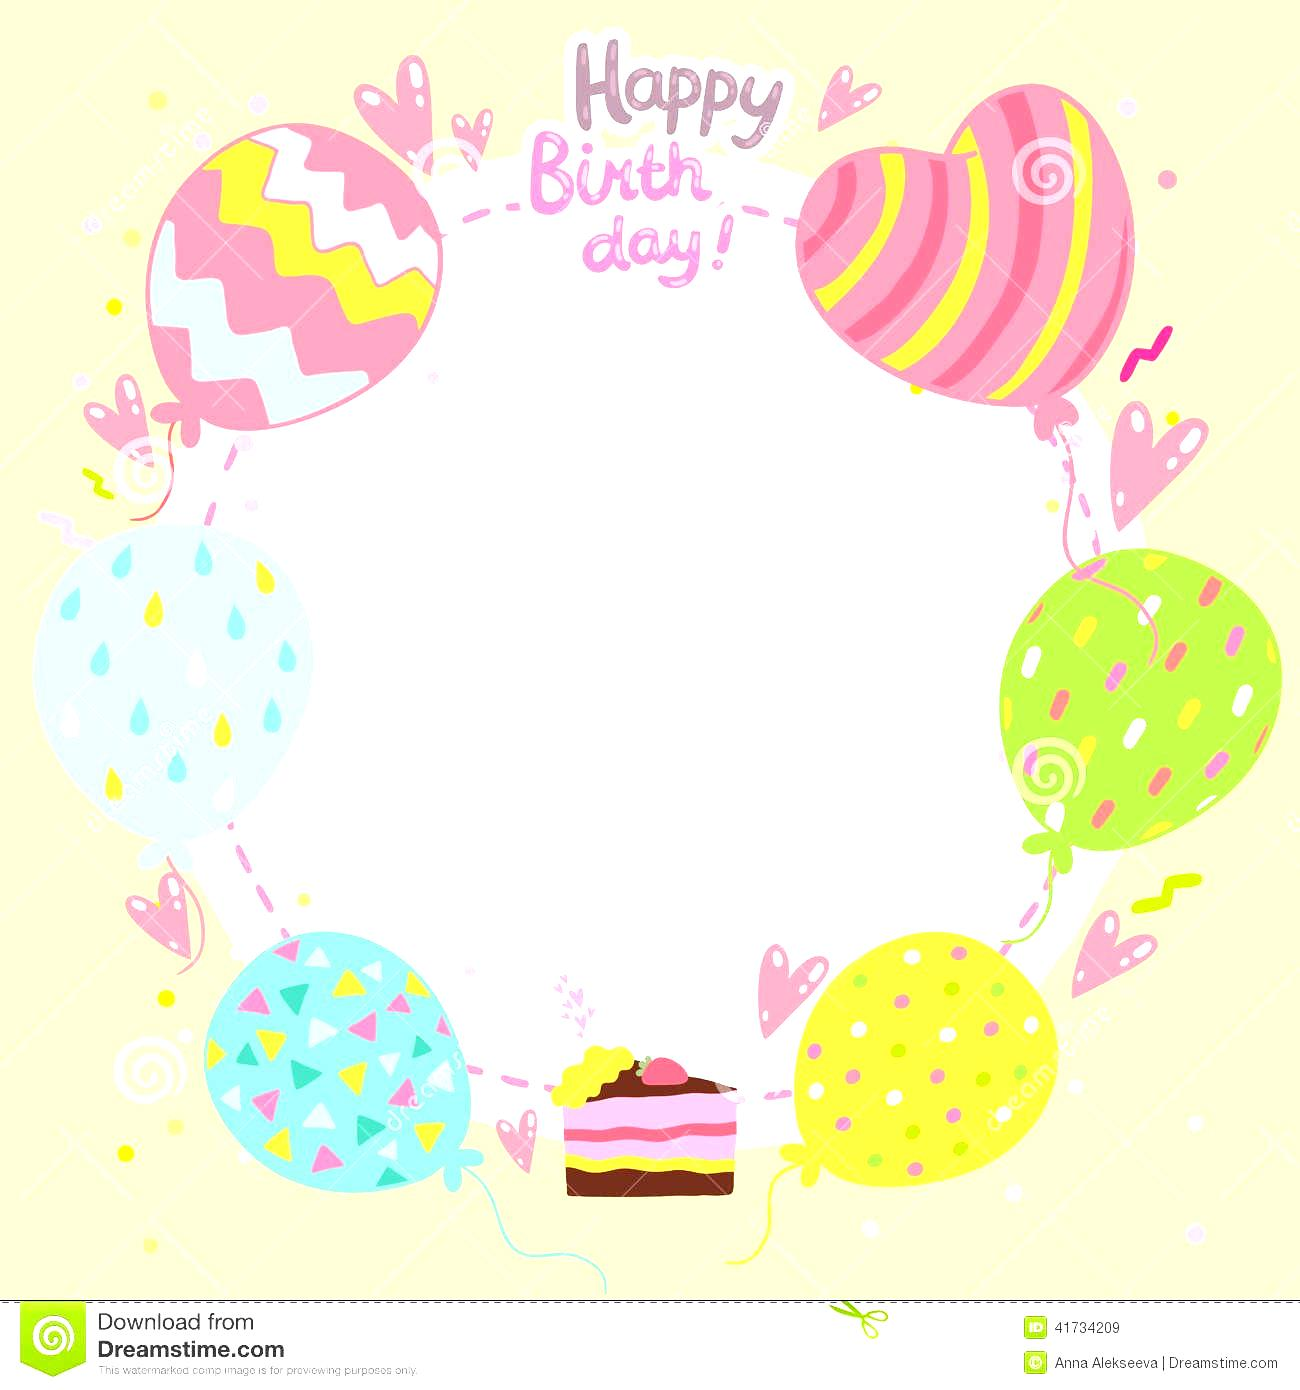 birthday card design template free ; birthday-card-word-templates-free-unique-shapes-balloons-with-cute-colored-pastel-decoration-cake-free-birthday-card-template